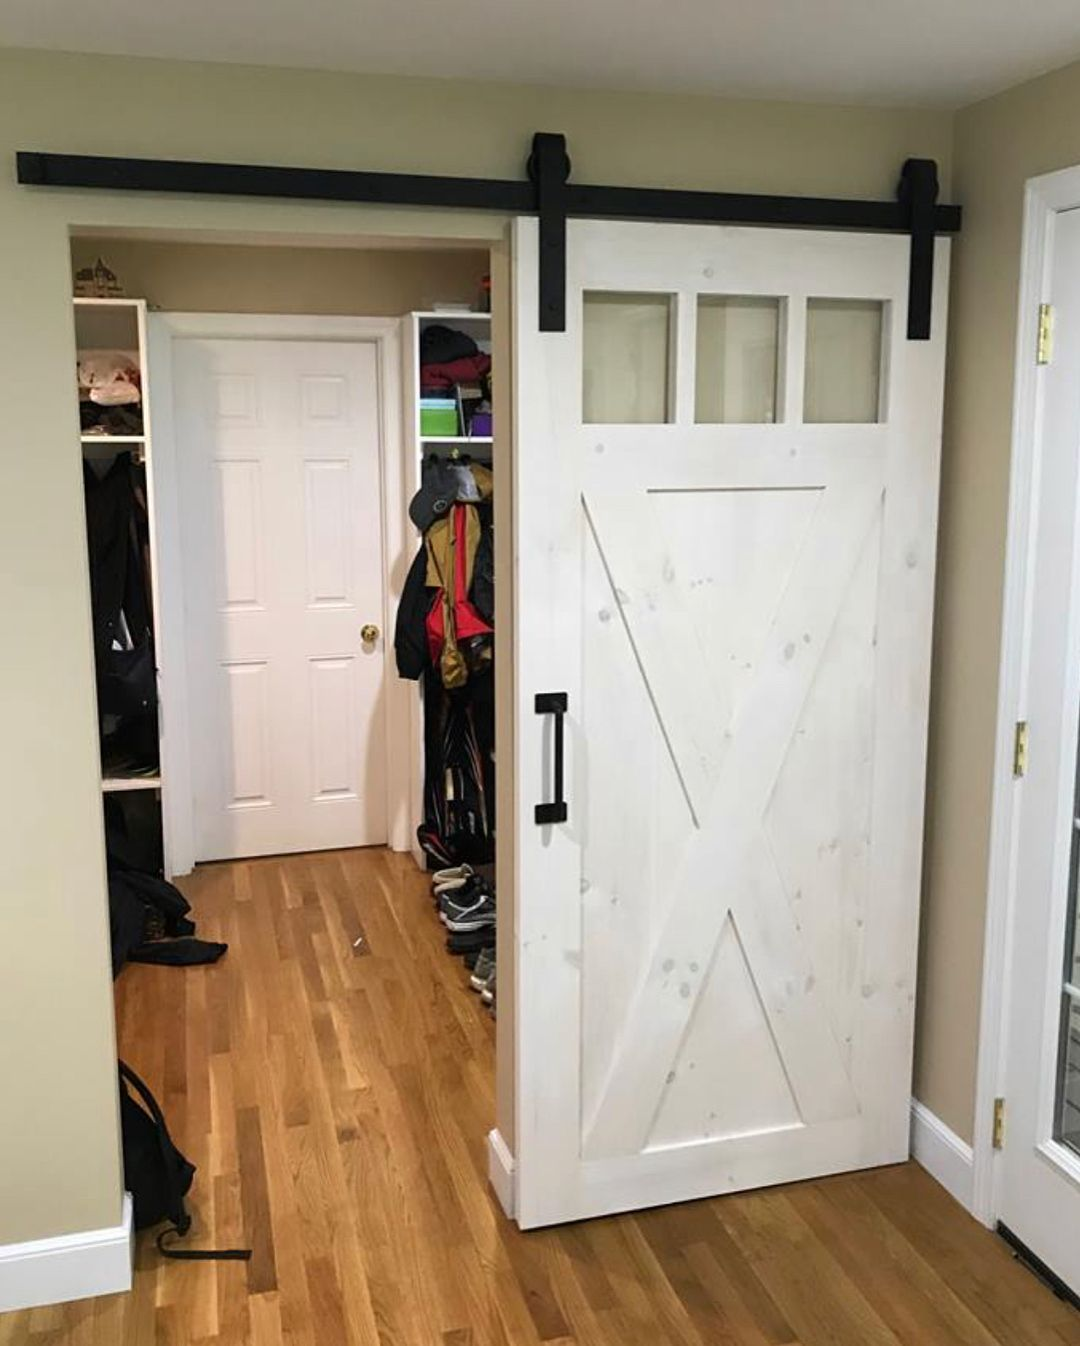 One Of Our Recently Installed 3 4 X Brace With Border Barn Doors With 3 Glass Panels And Whitewash Stai Interior Barn Doors Diy Interior Barn Doors Barn Door